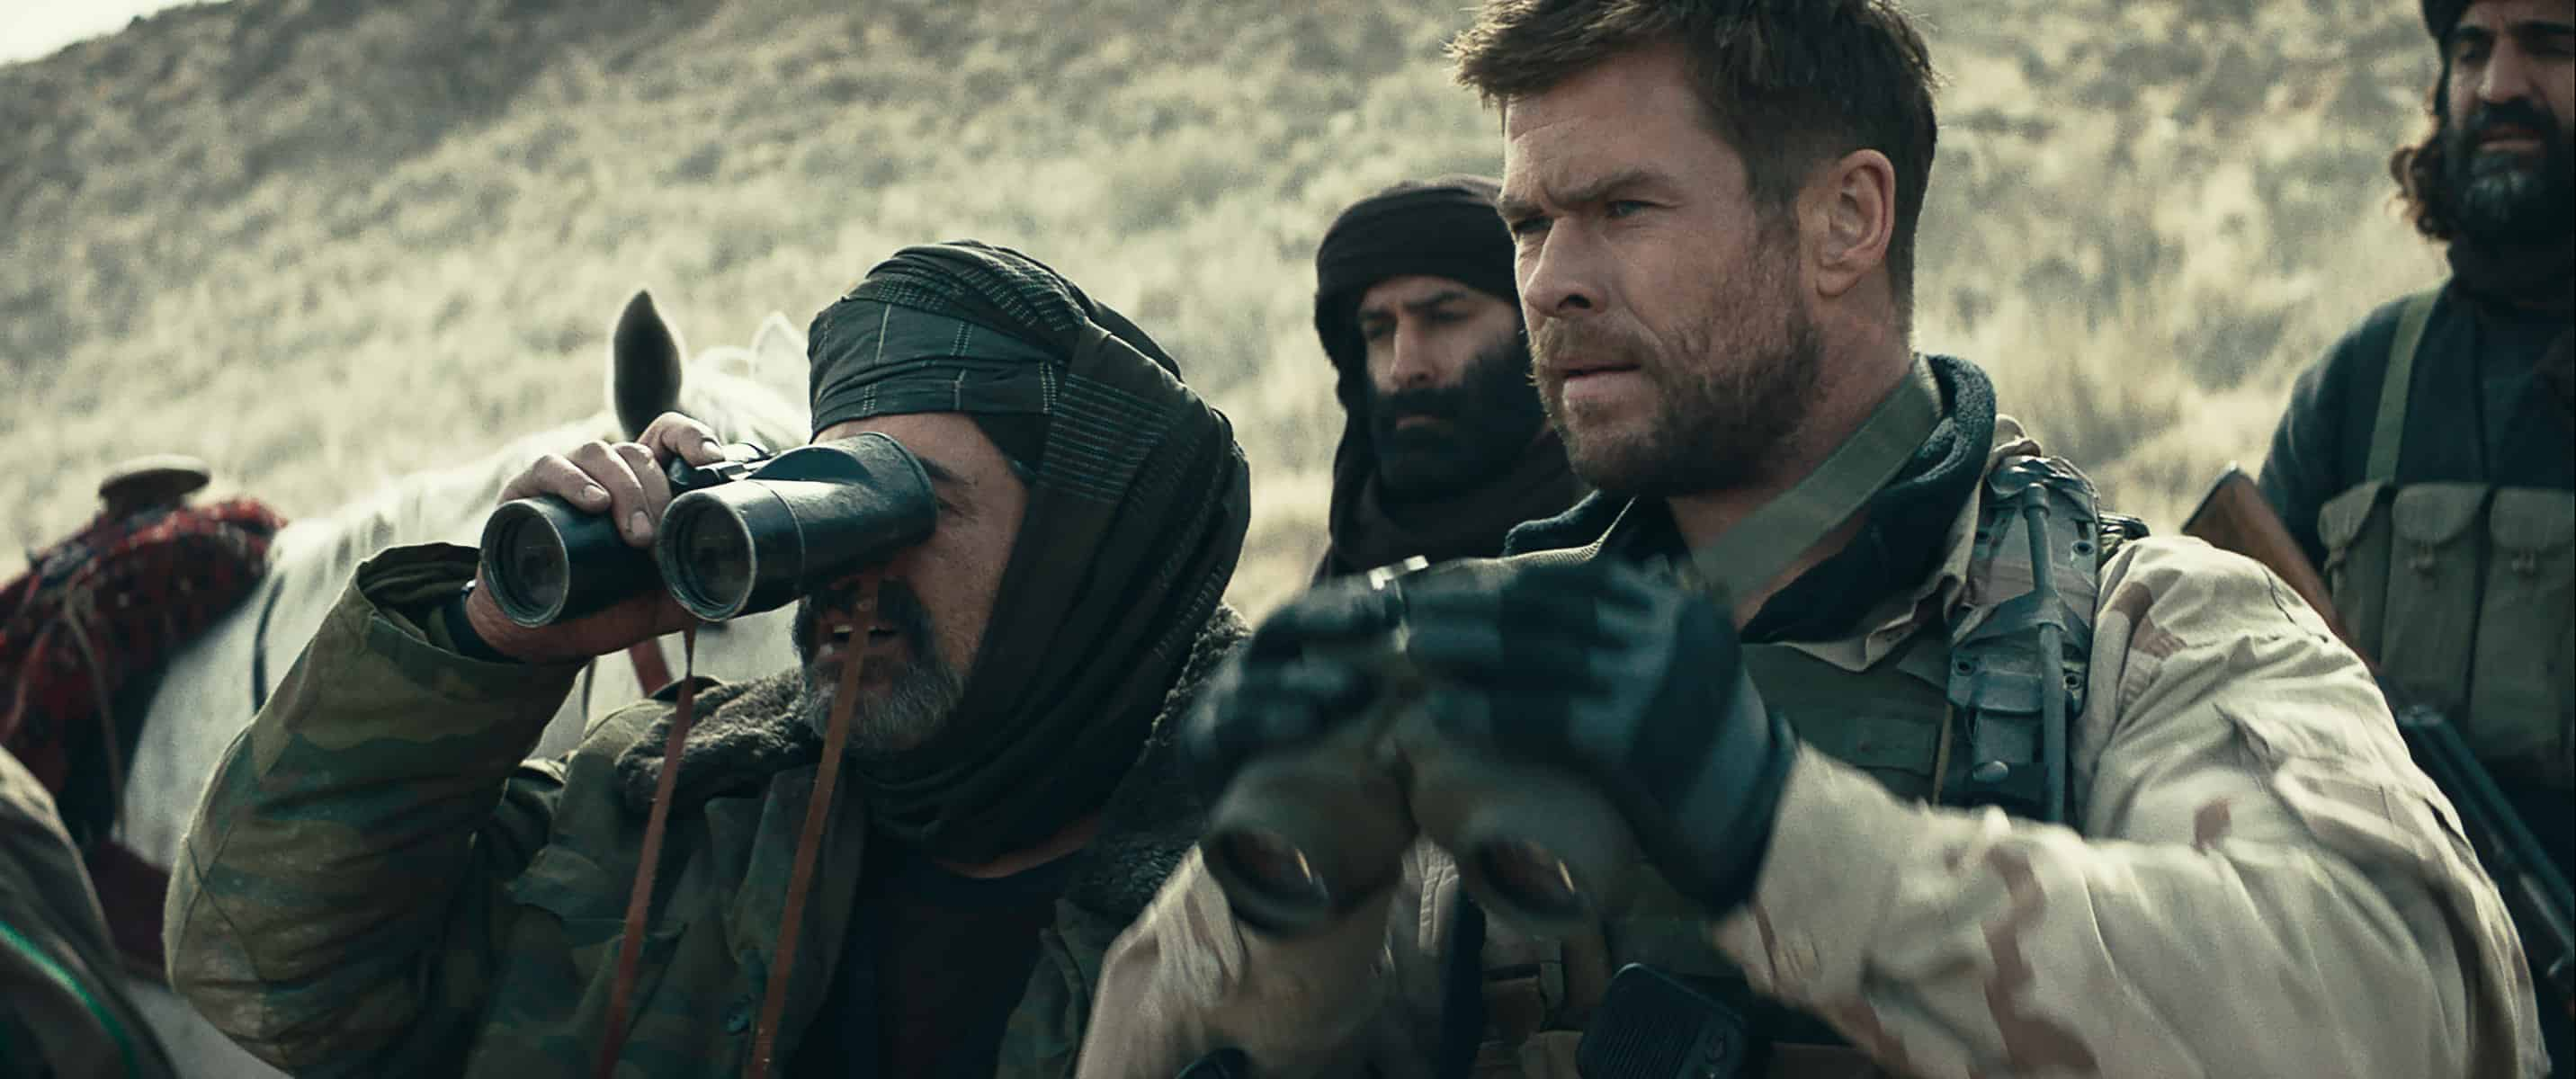 12 Strong Movie - A Heart Of A Hero   A Twitter Party -9879